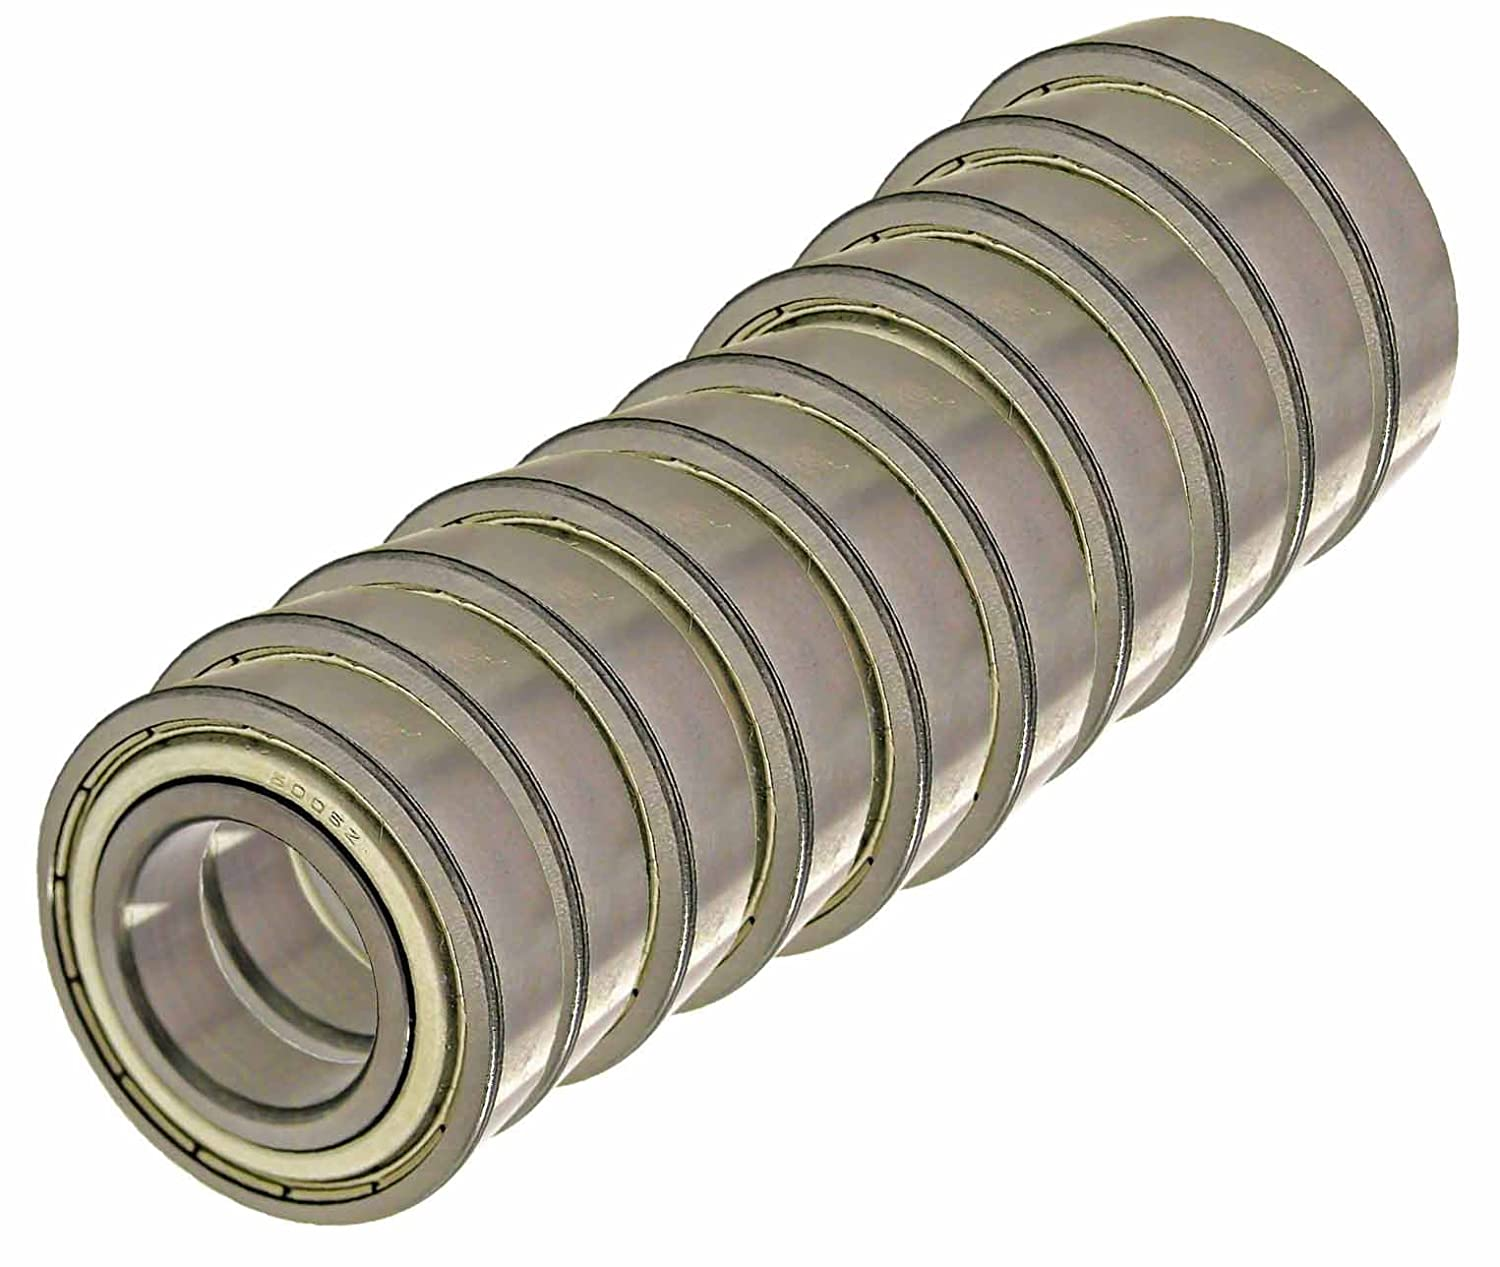 1//4 x 1//4-18 Hose Barb to Pipe Swivel Brass 1//4 x 1//4-18 Tompkins LS-4244-04-04 Hose Barb Fitting